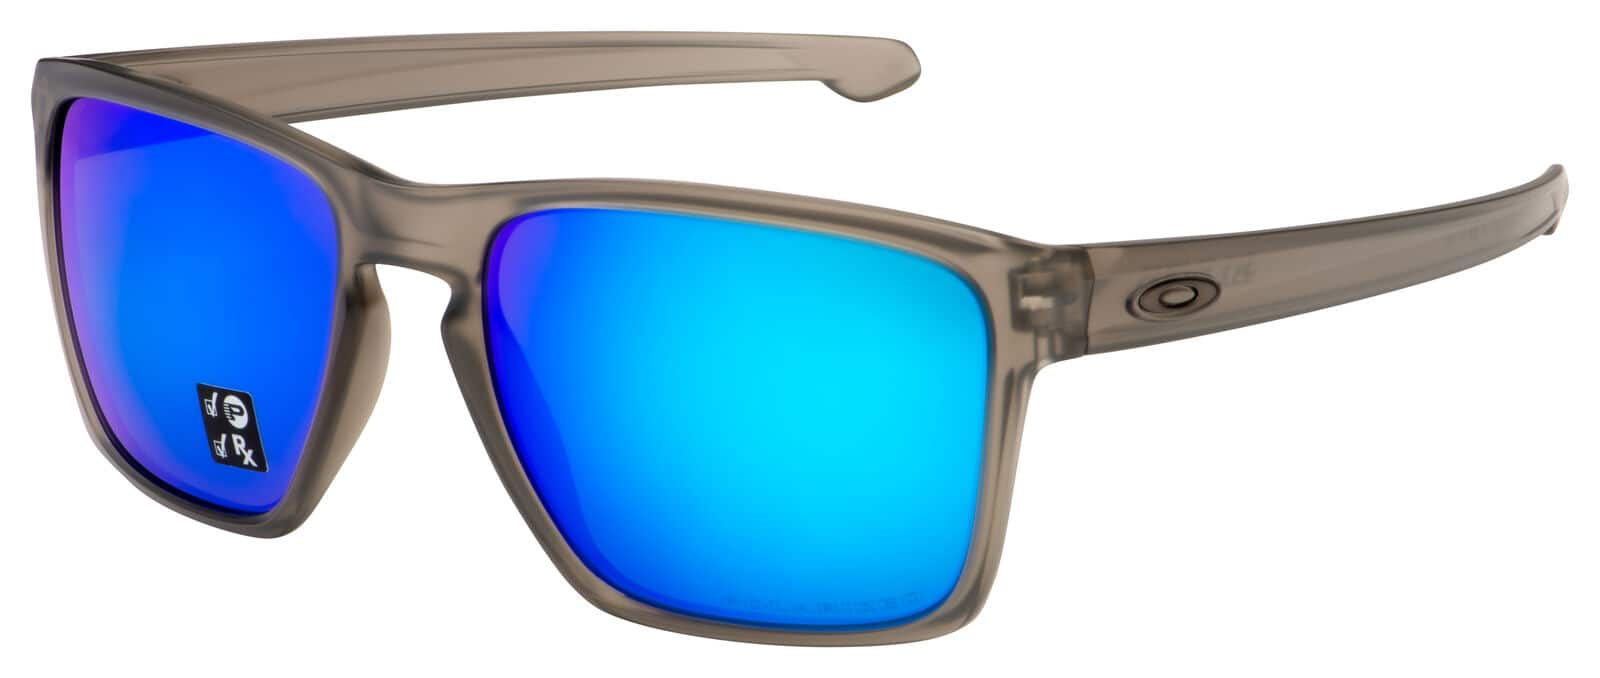 World-Of-Optics on eBay is having a huge sale!!! Name Brand Shades Starting From $23.49 Shipping Is Free